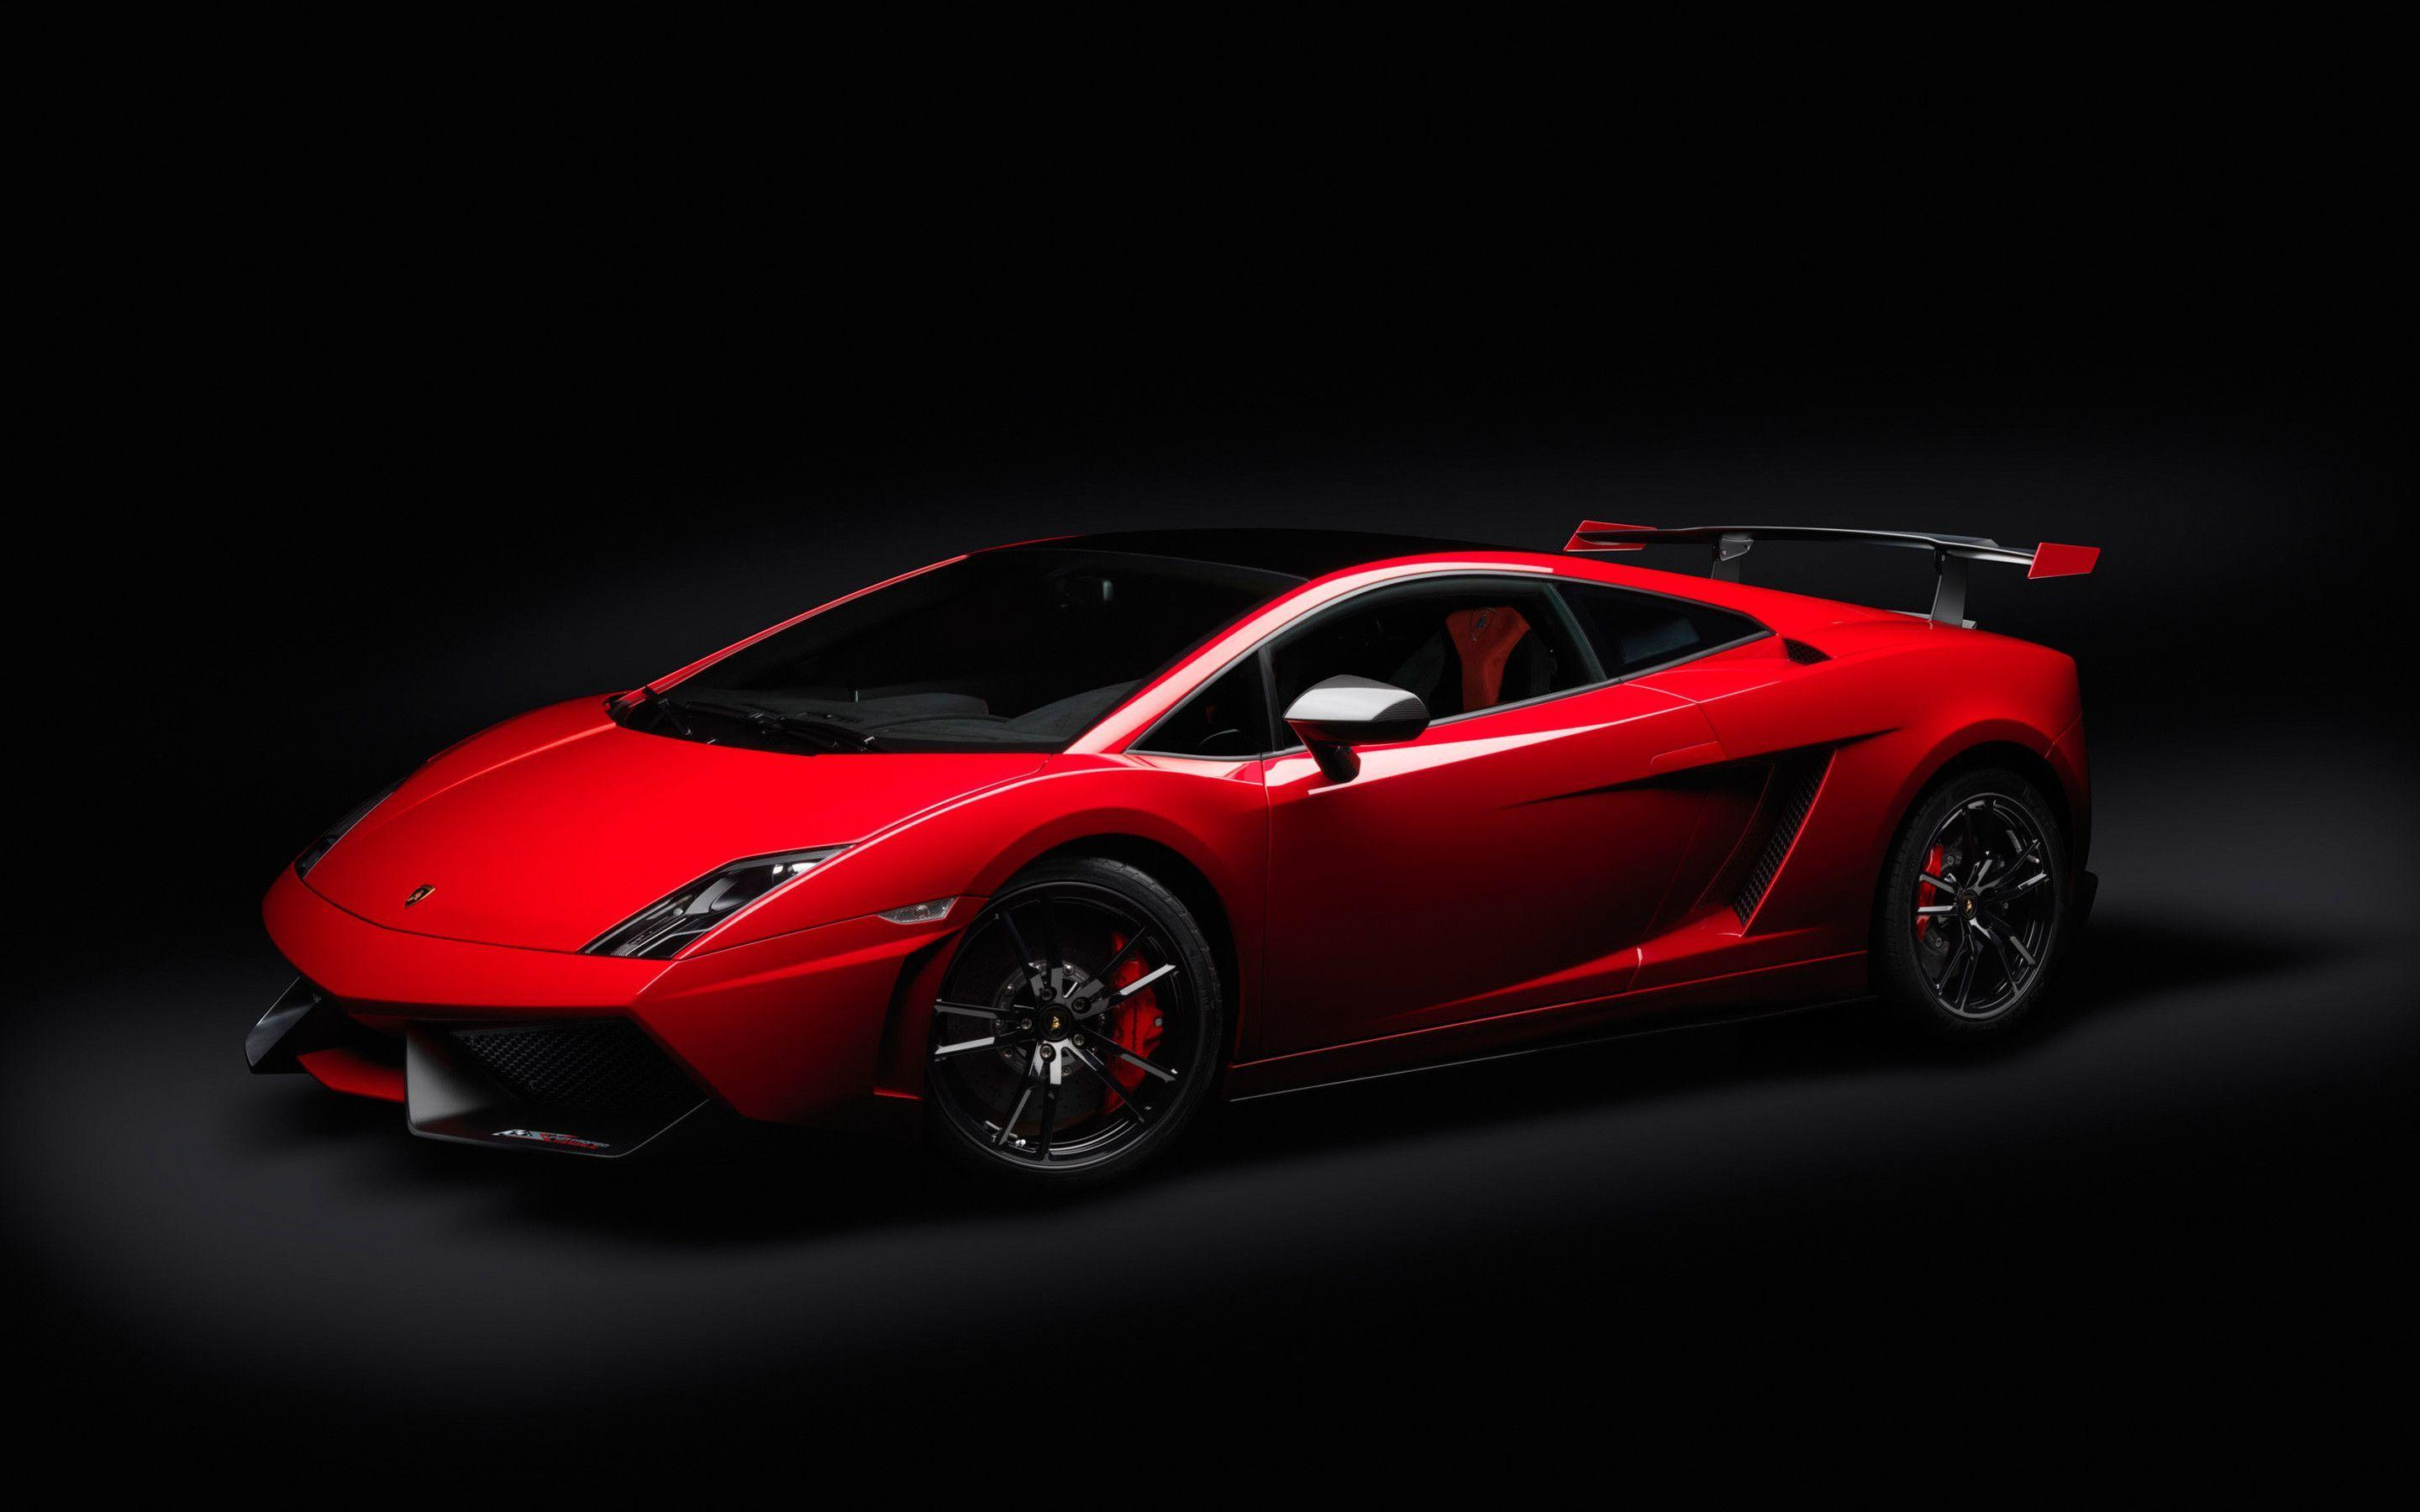 2012 Lamborghini Gallardo LP 570 4 Wallpapers